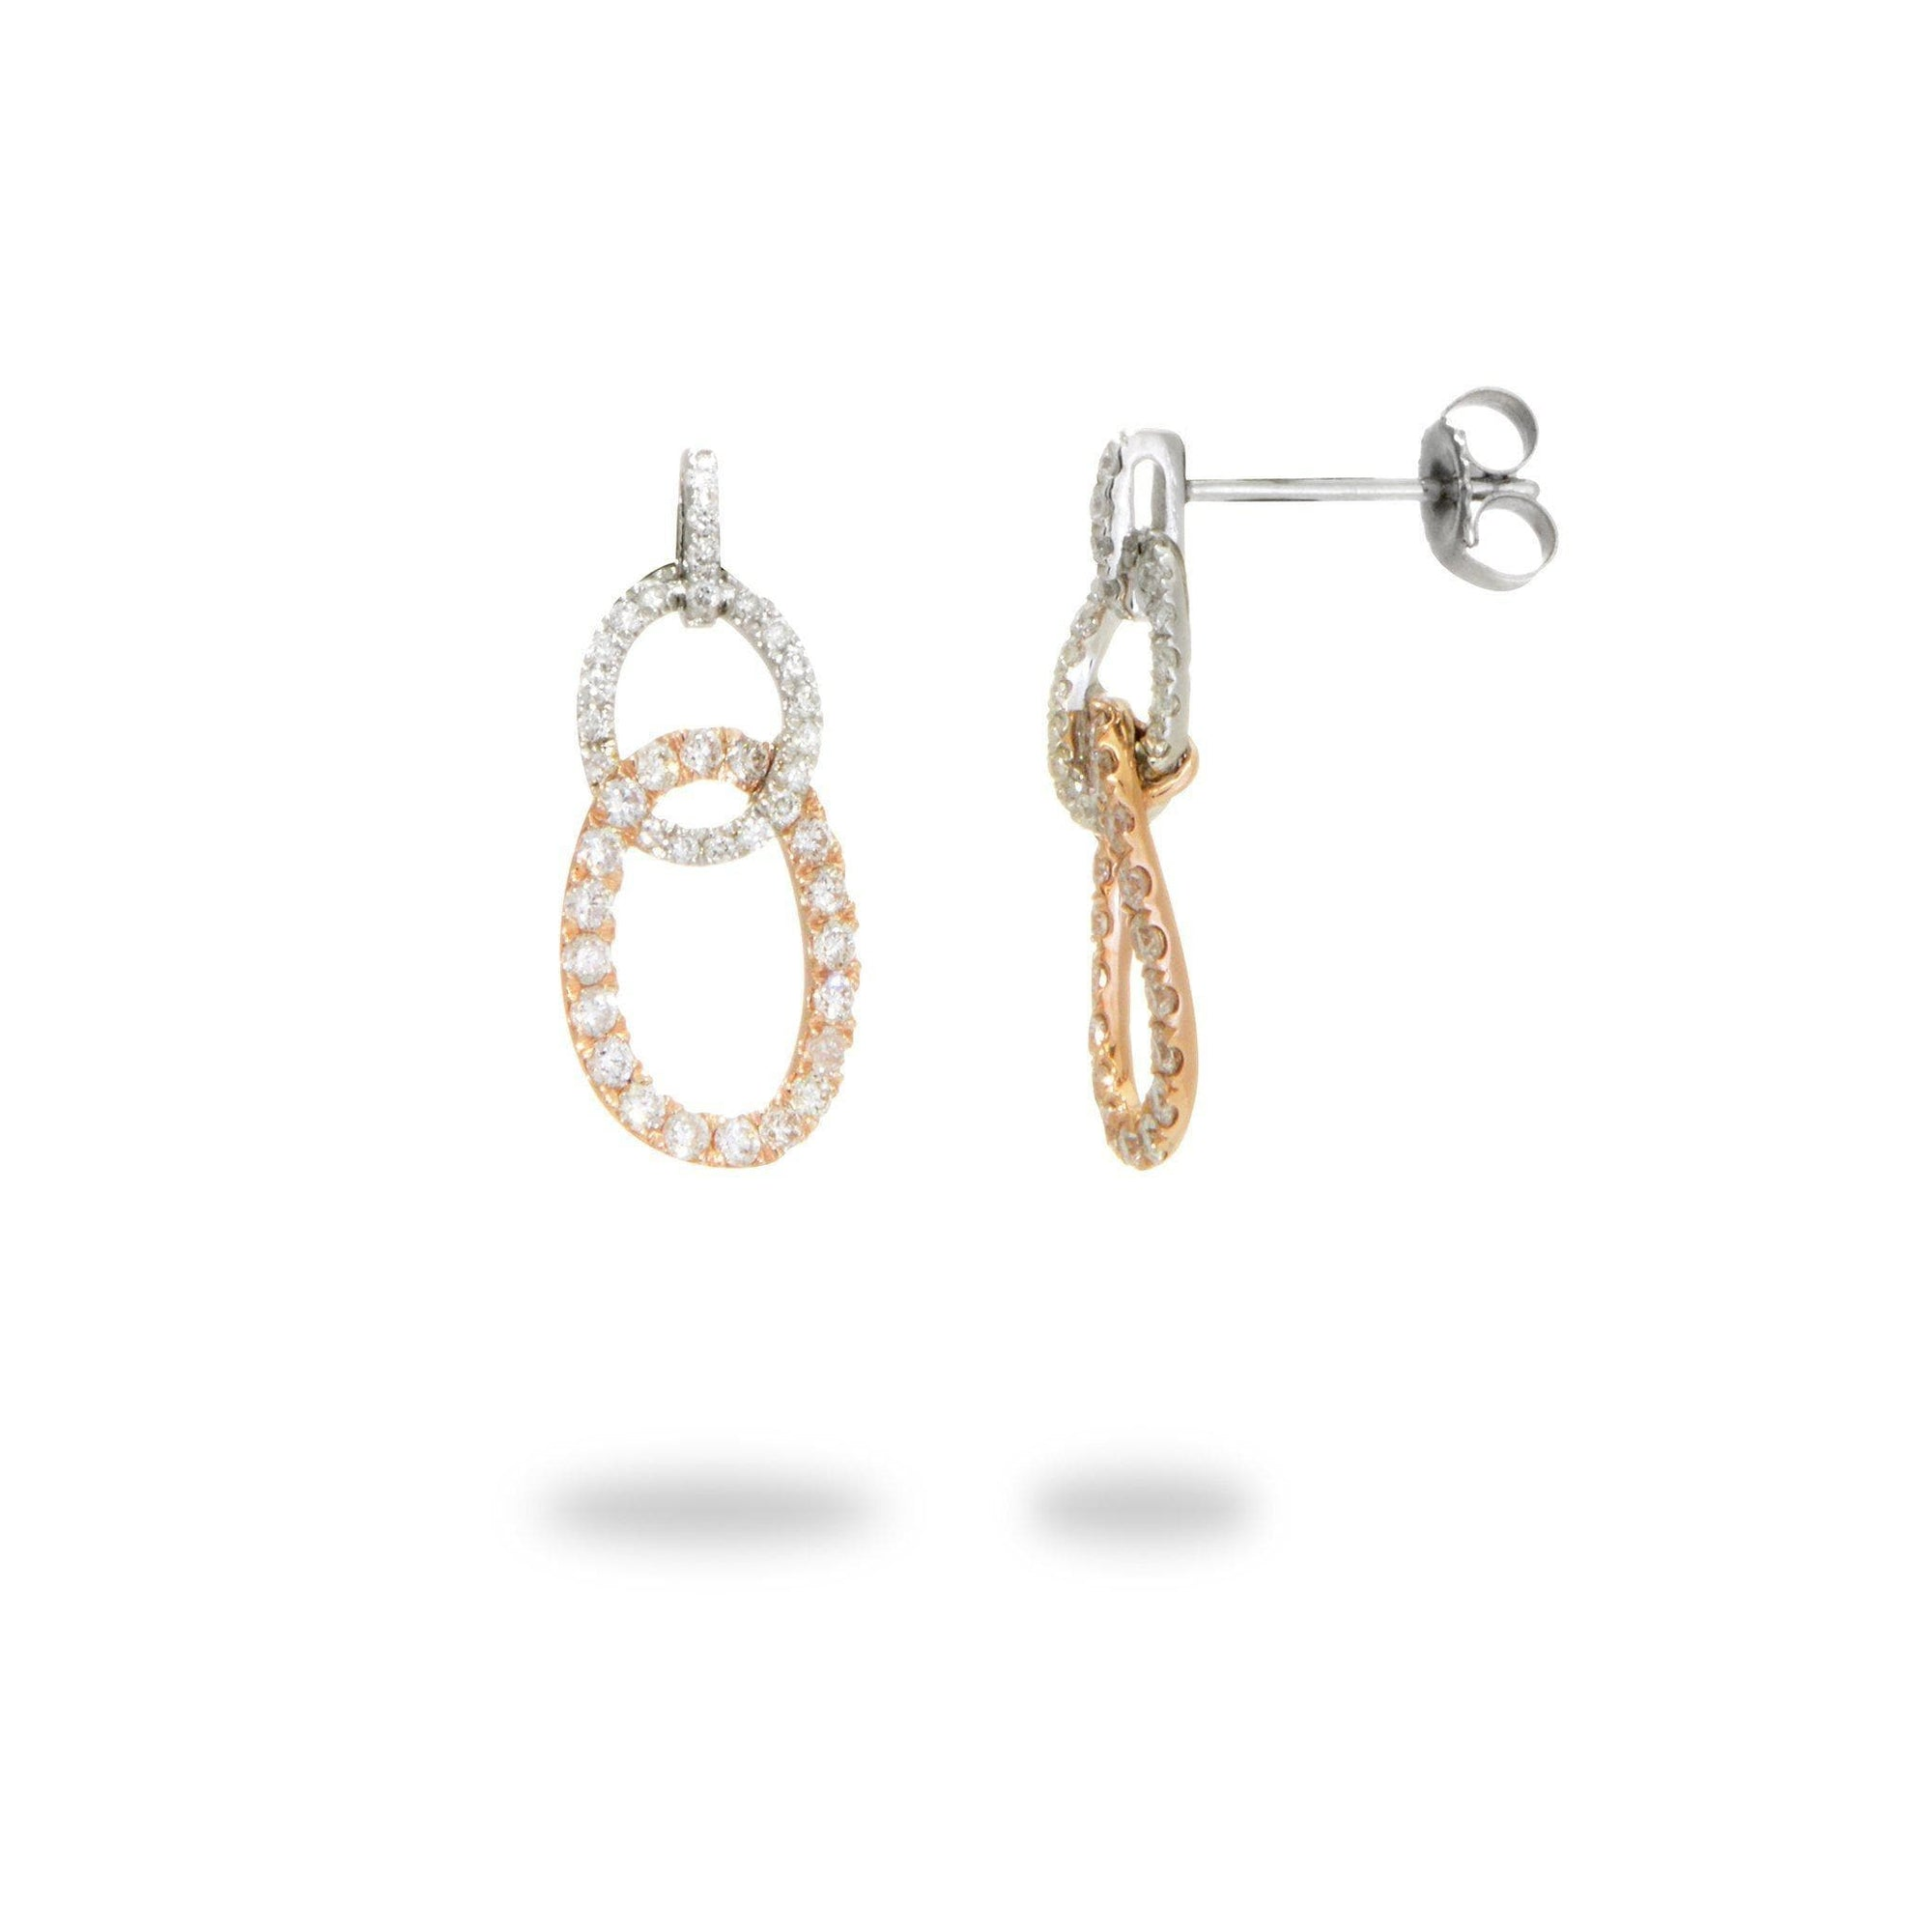 Interlooping Oval Diamond Earrings in 14K White and Rose Gold - Maui Divers Jewelry